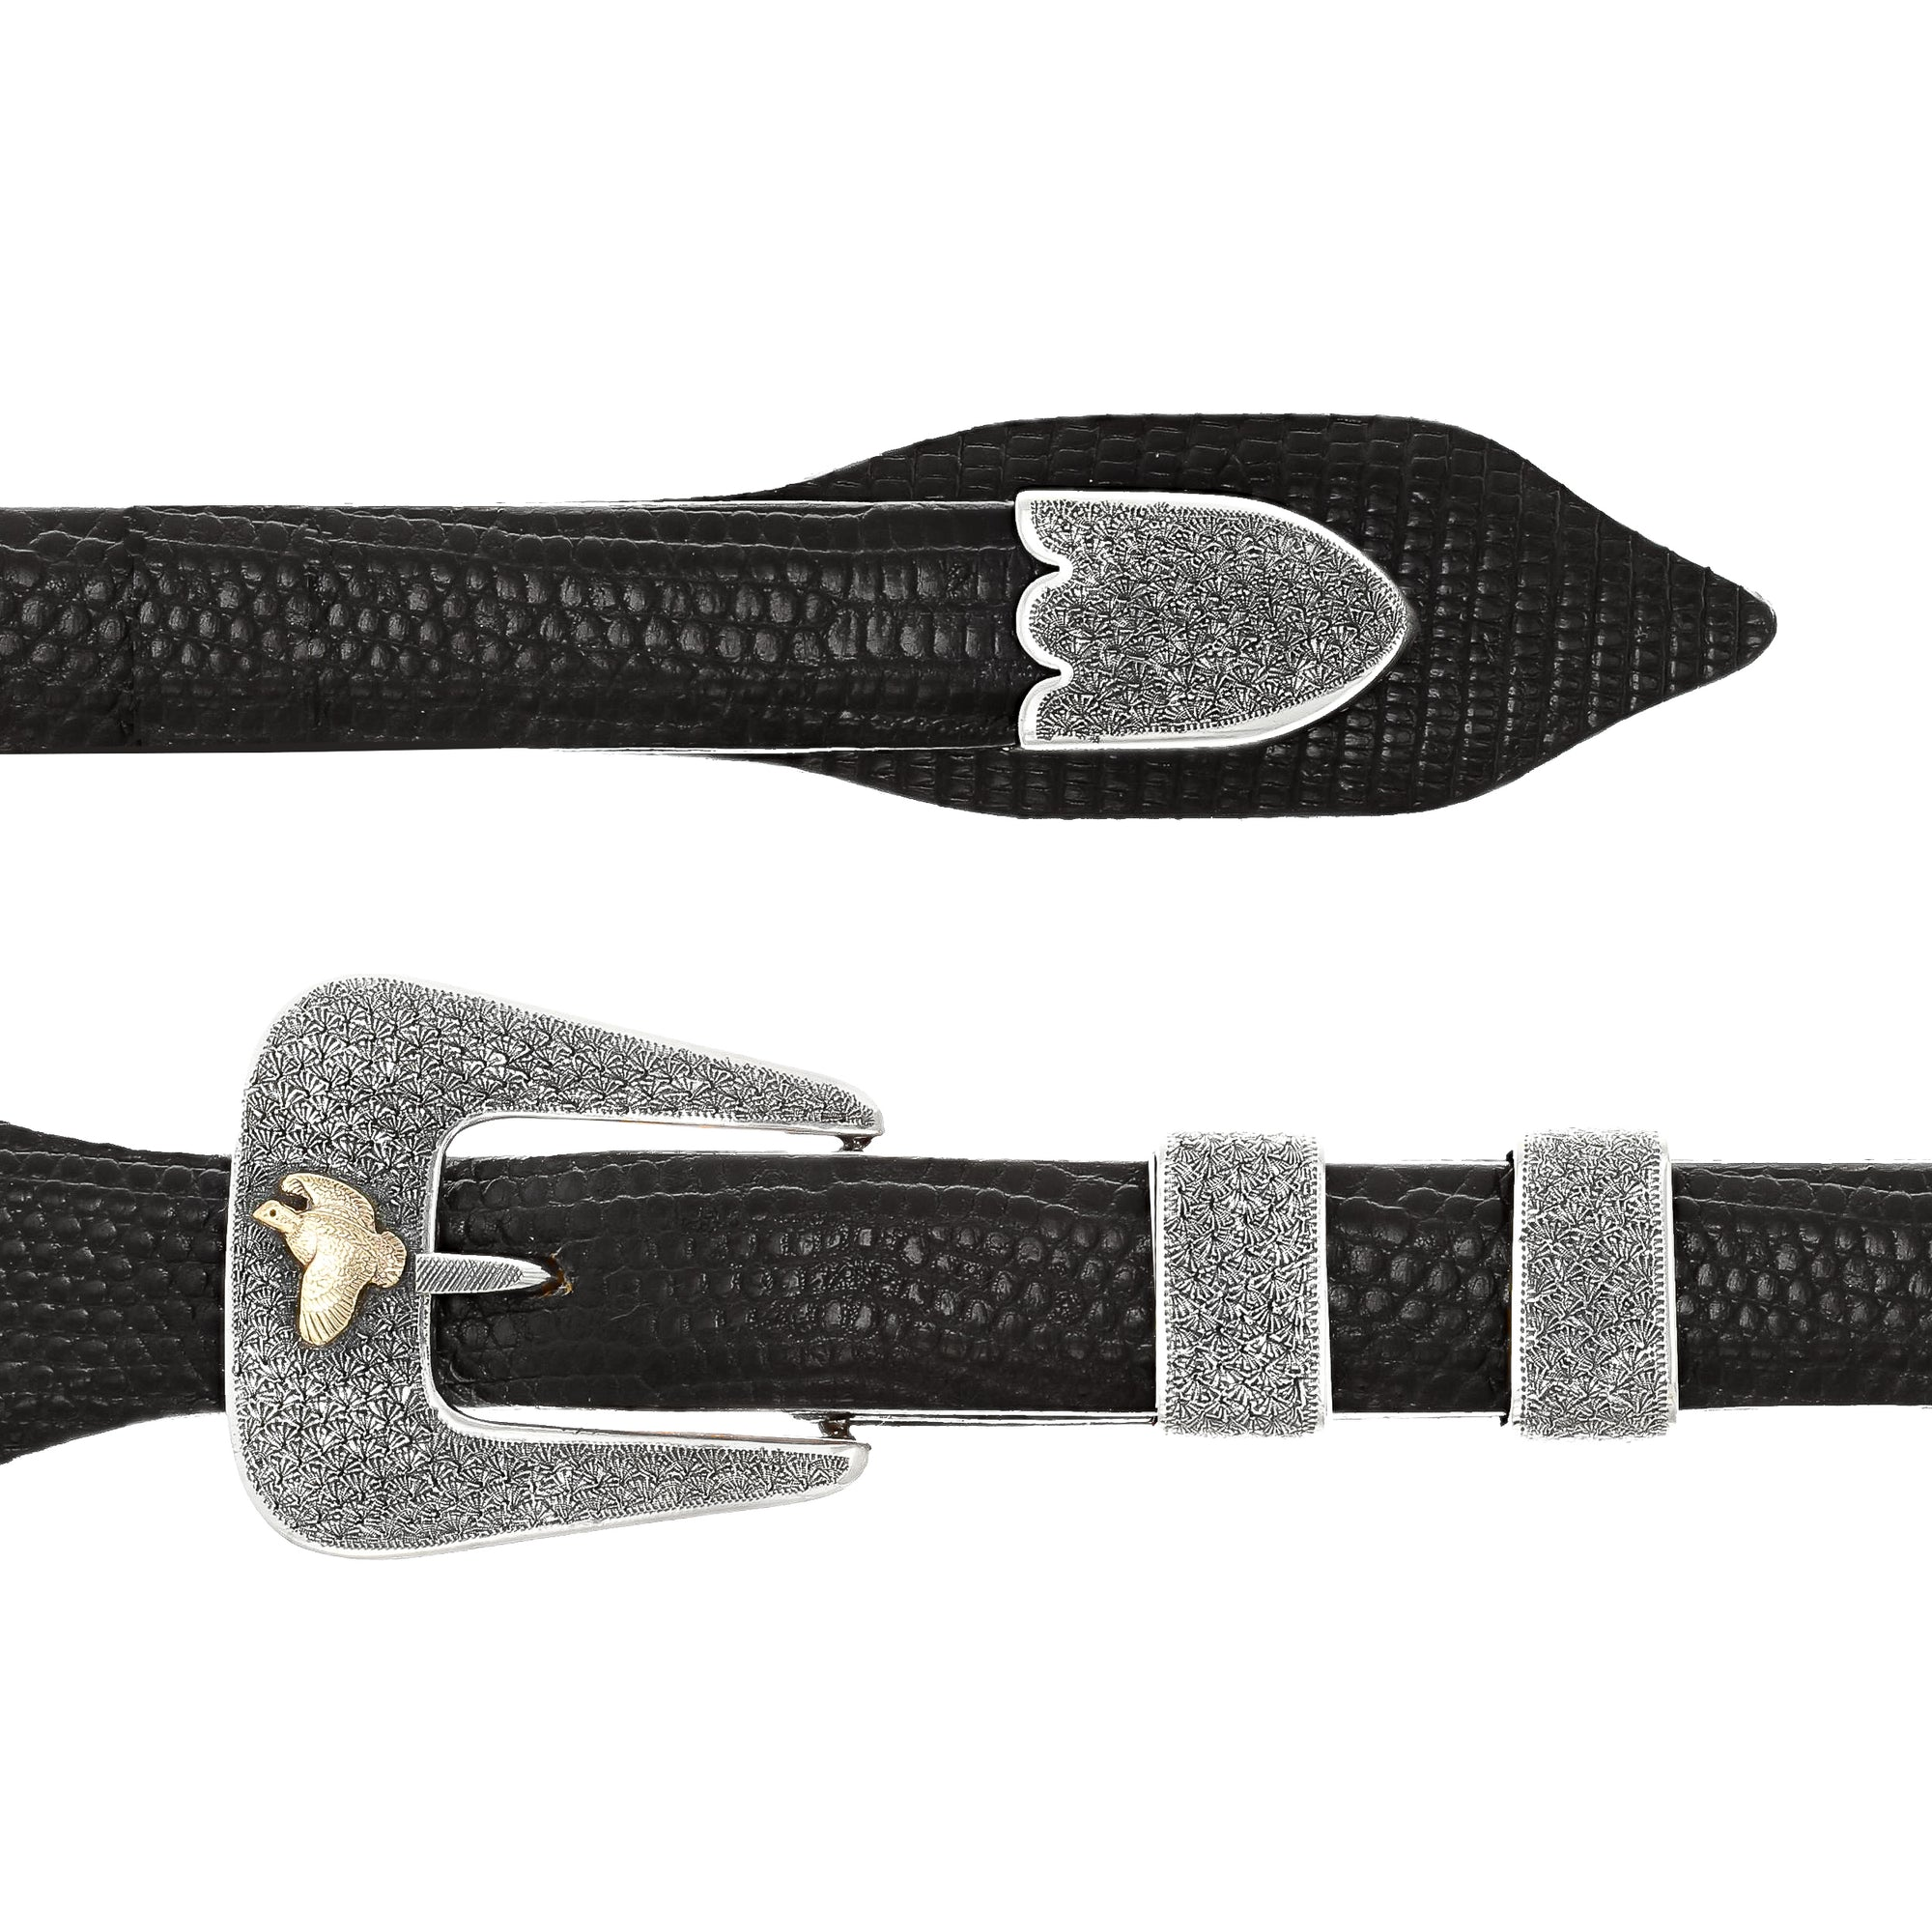 Houston 1600 Quail in Flight Buckle Set